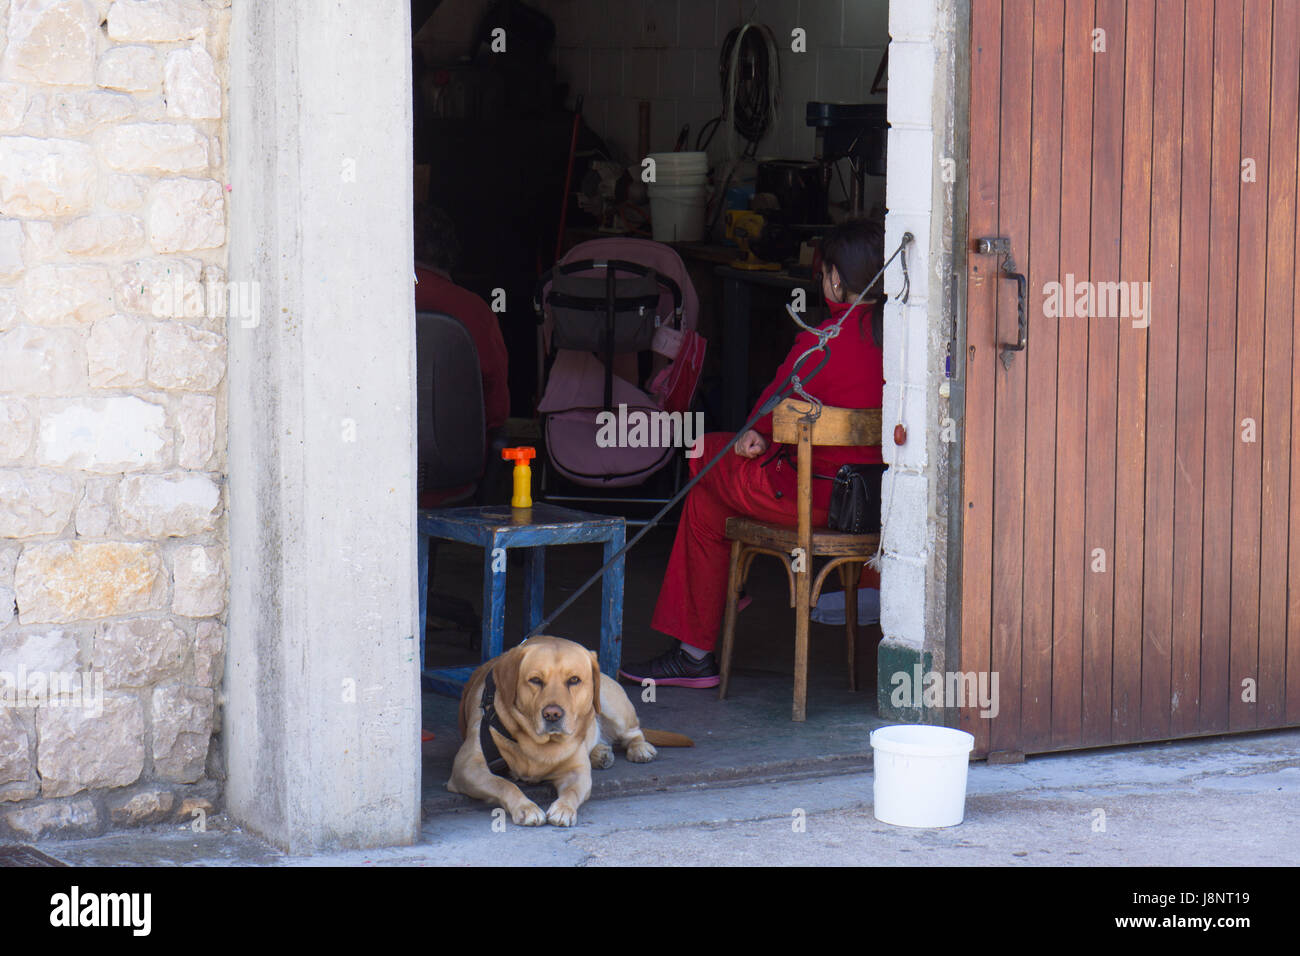 Labrador dog guarding the entrance to a fisherman's shed with family inside. - Stock Image